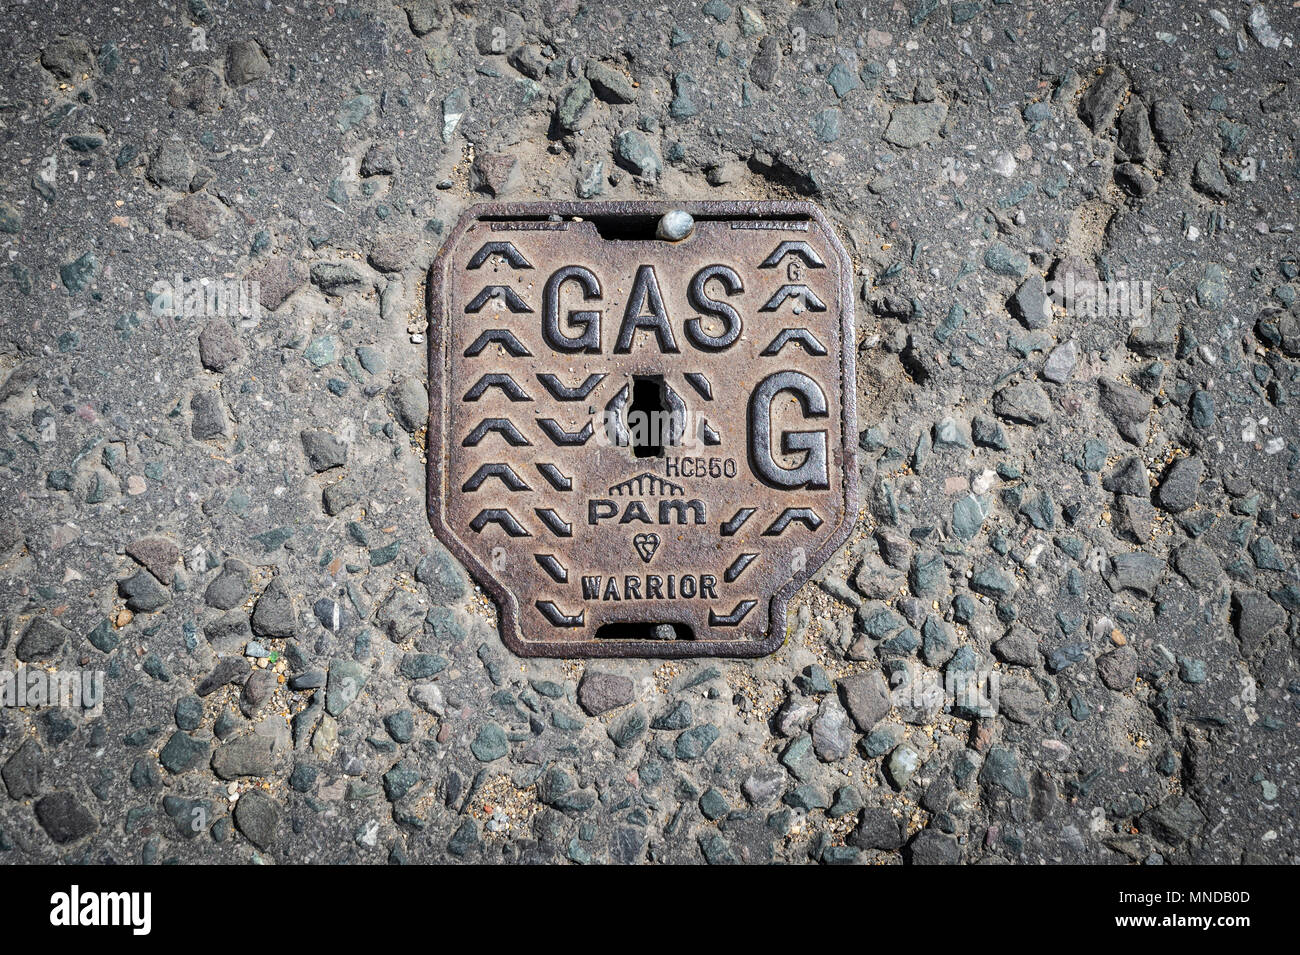 cast iron gas access manhole cover in the street - Stock Image